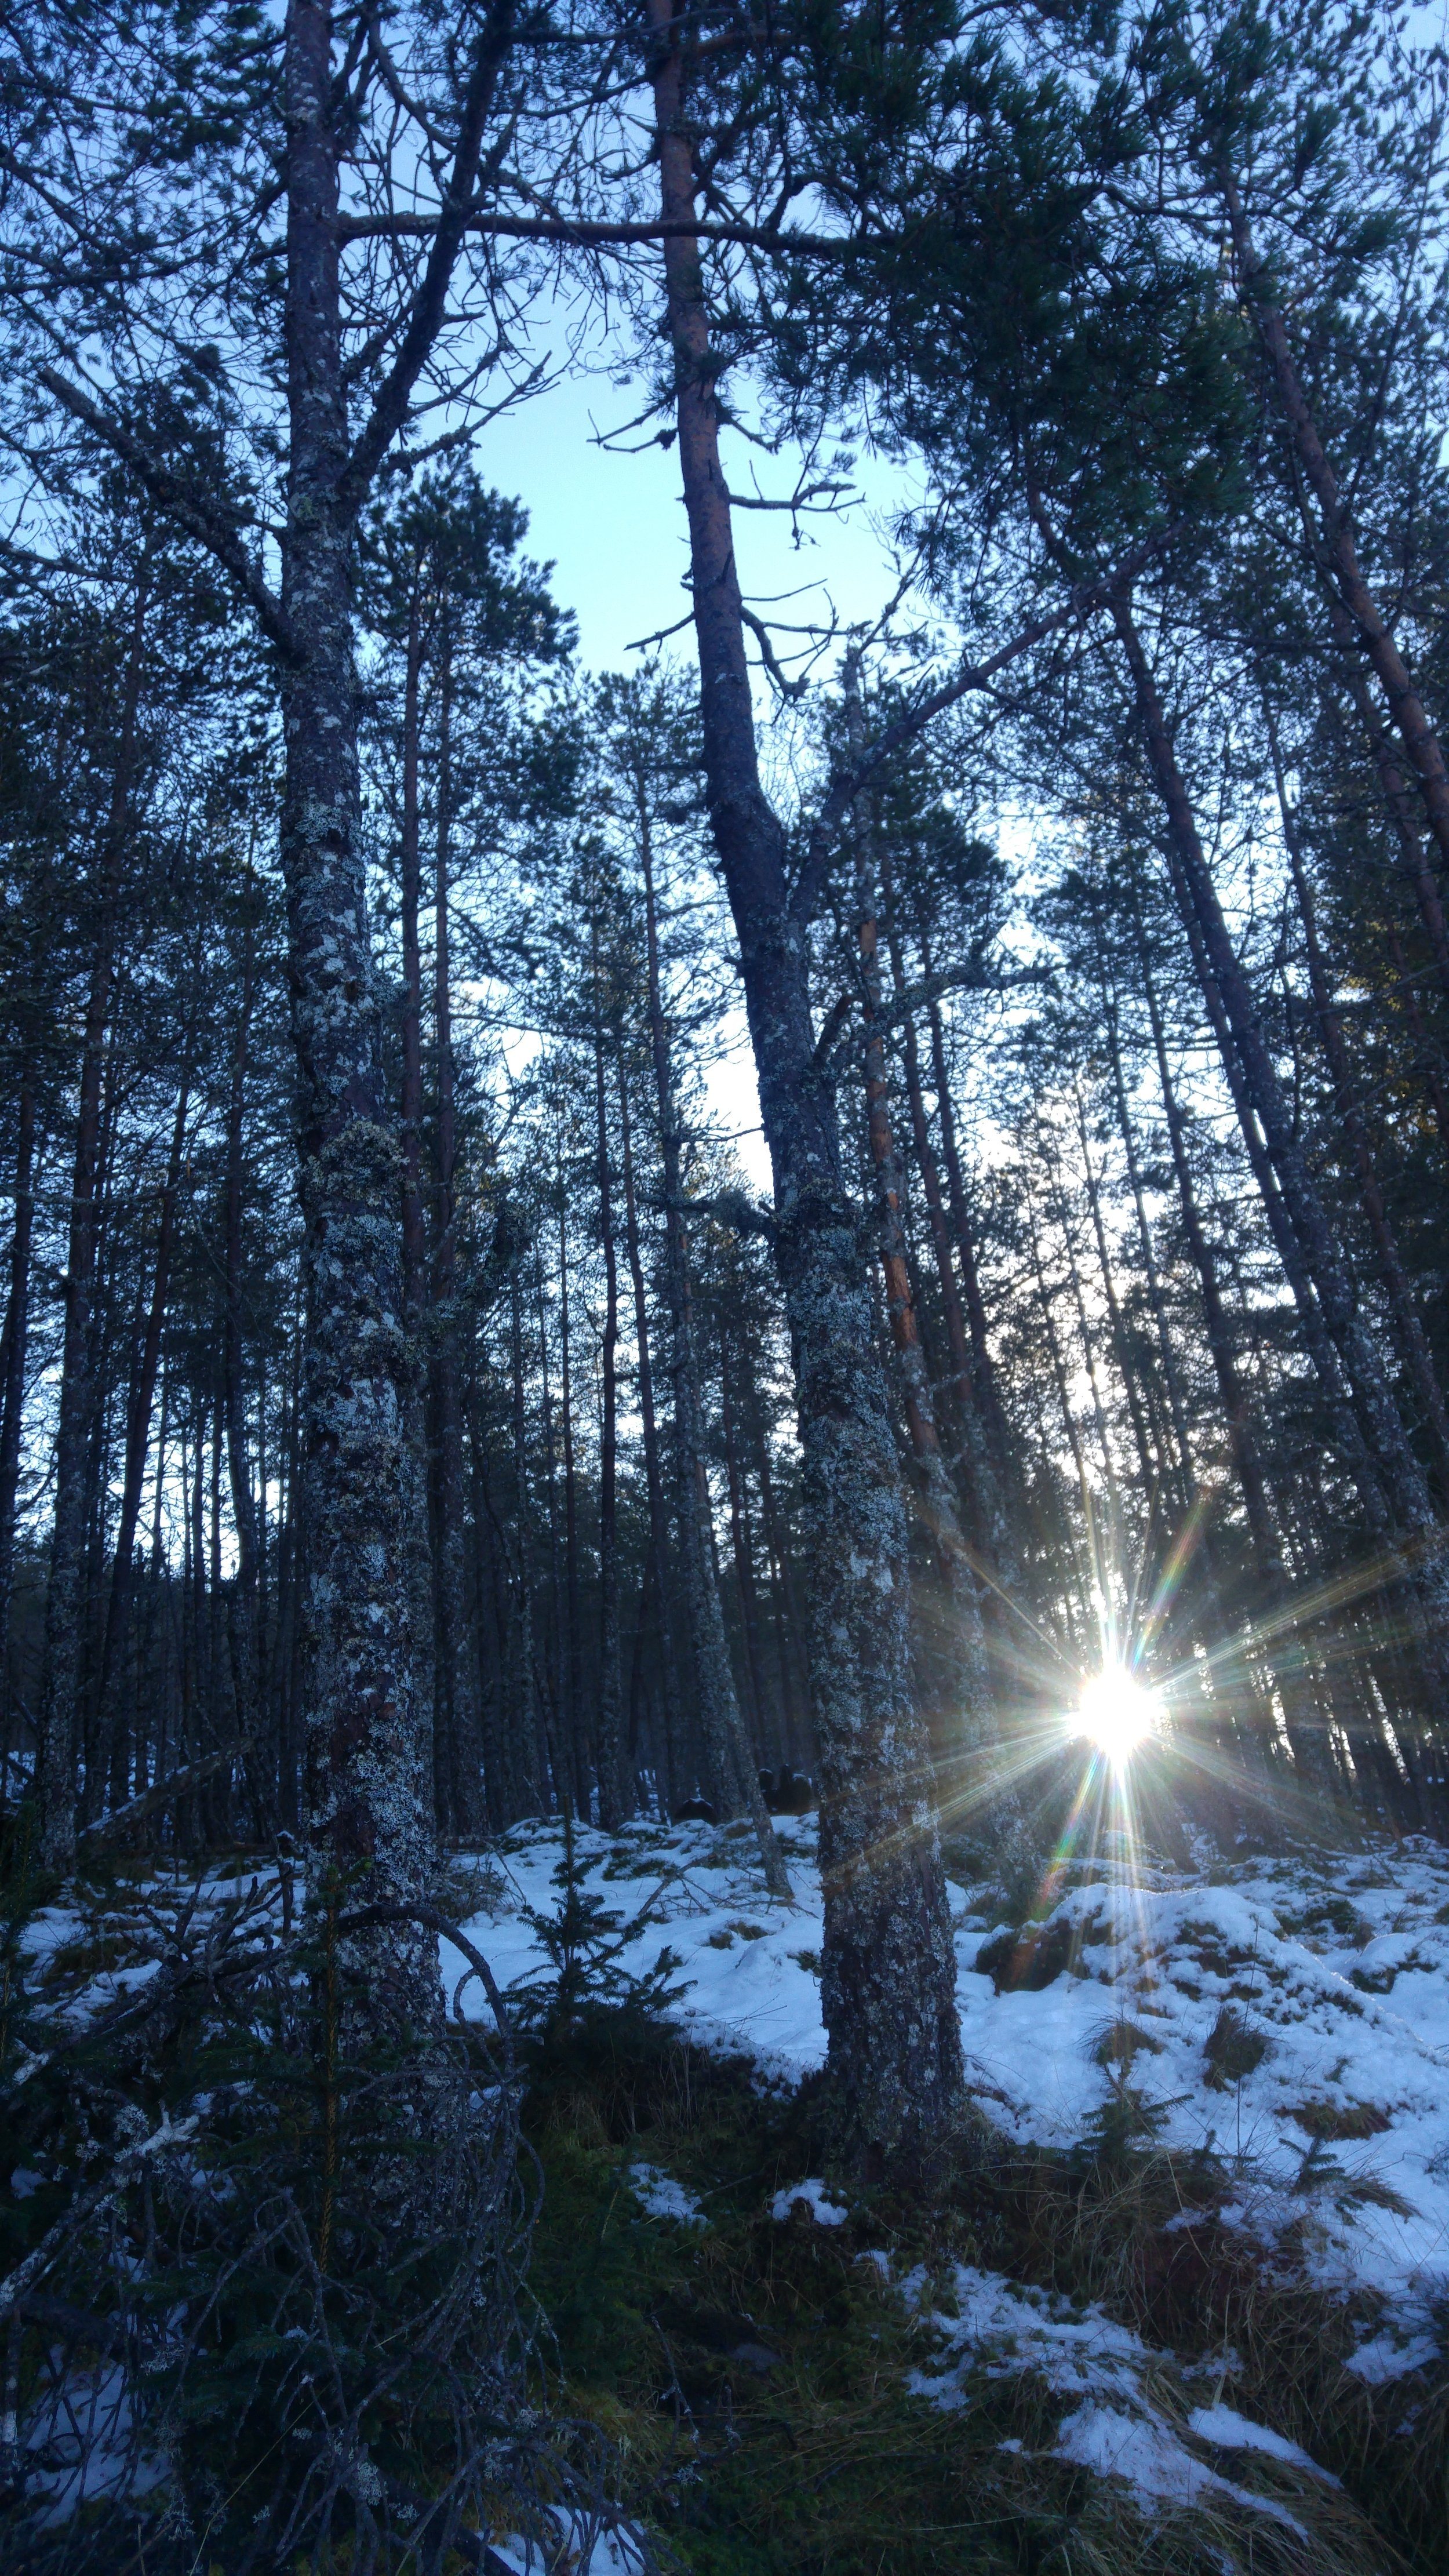 January sun shining through a stand of Scots pine at 11 in the morn'.